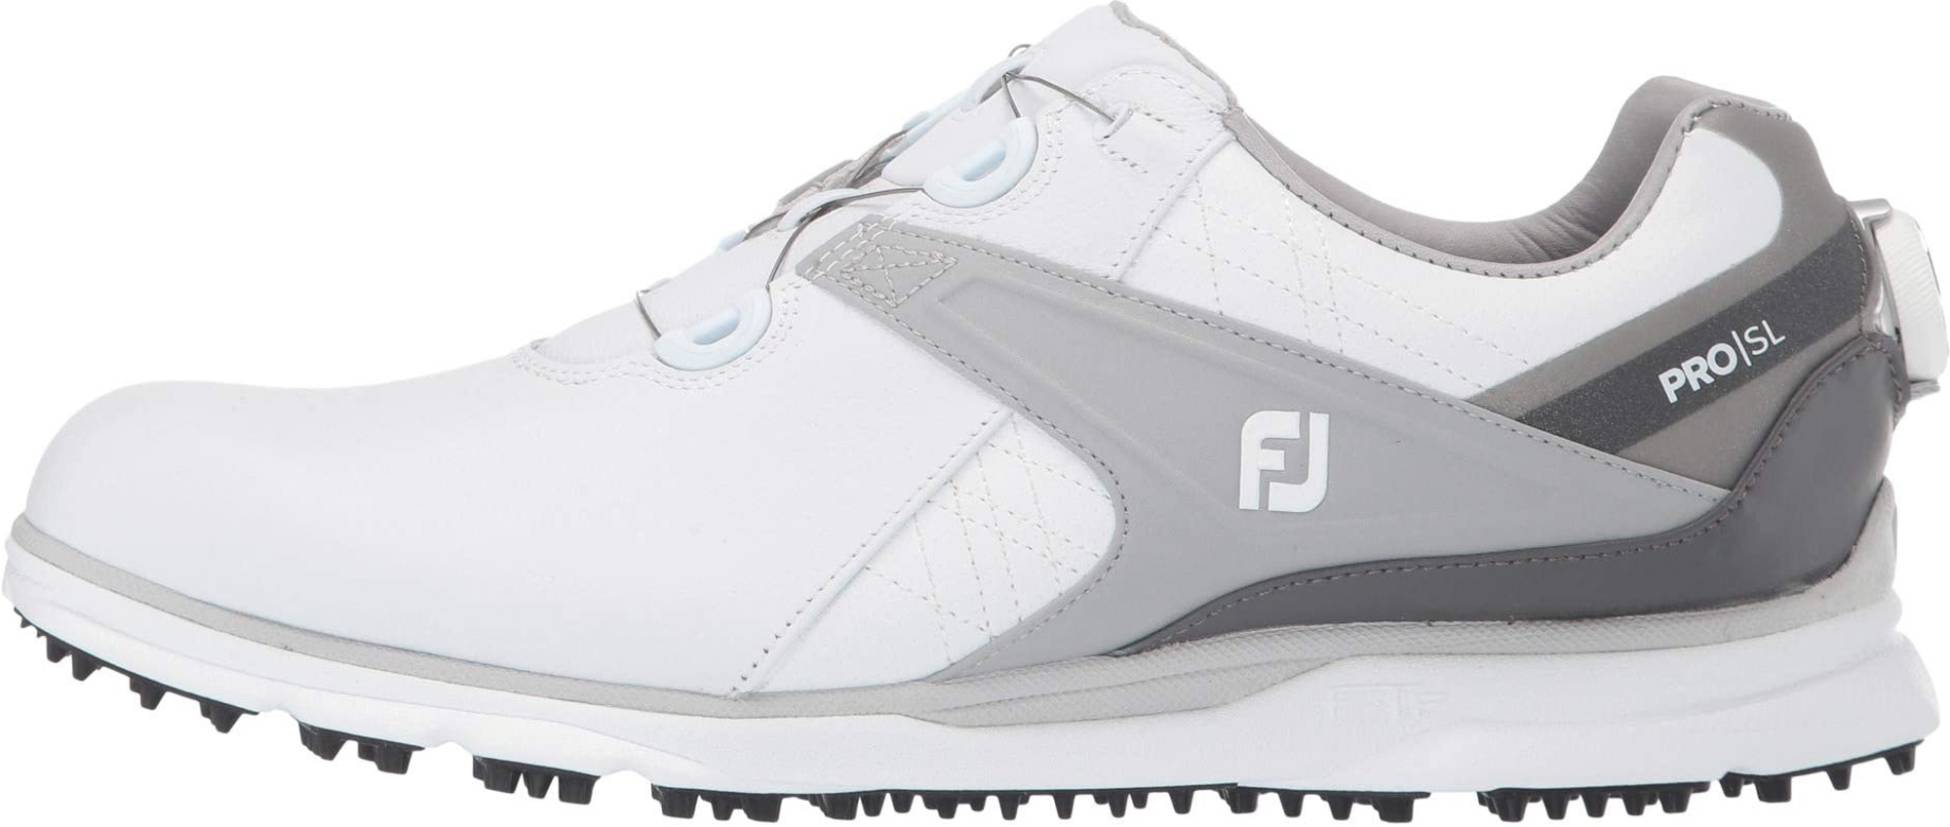 Save 17% on X-wide White Golf Shoes (13